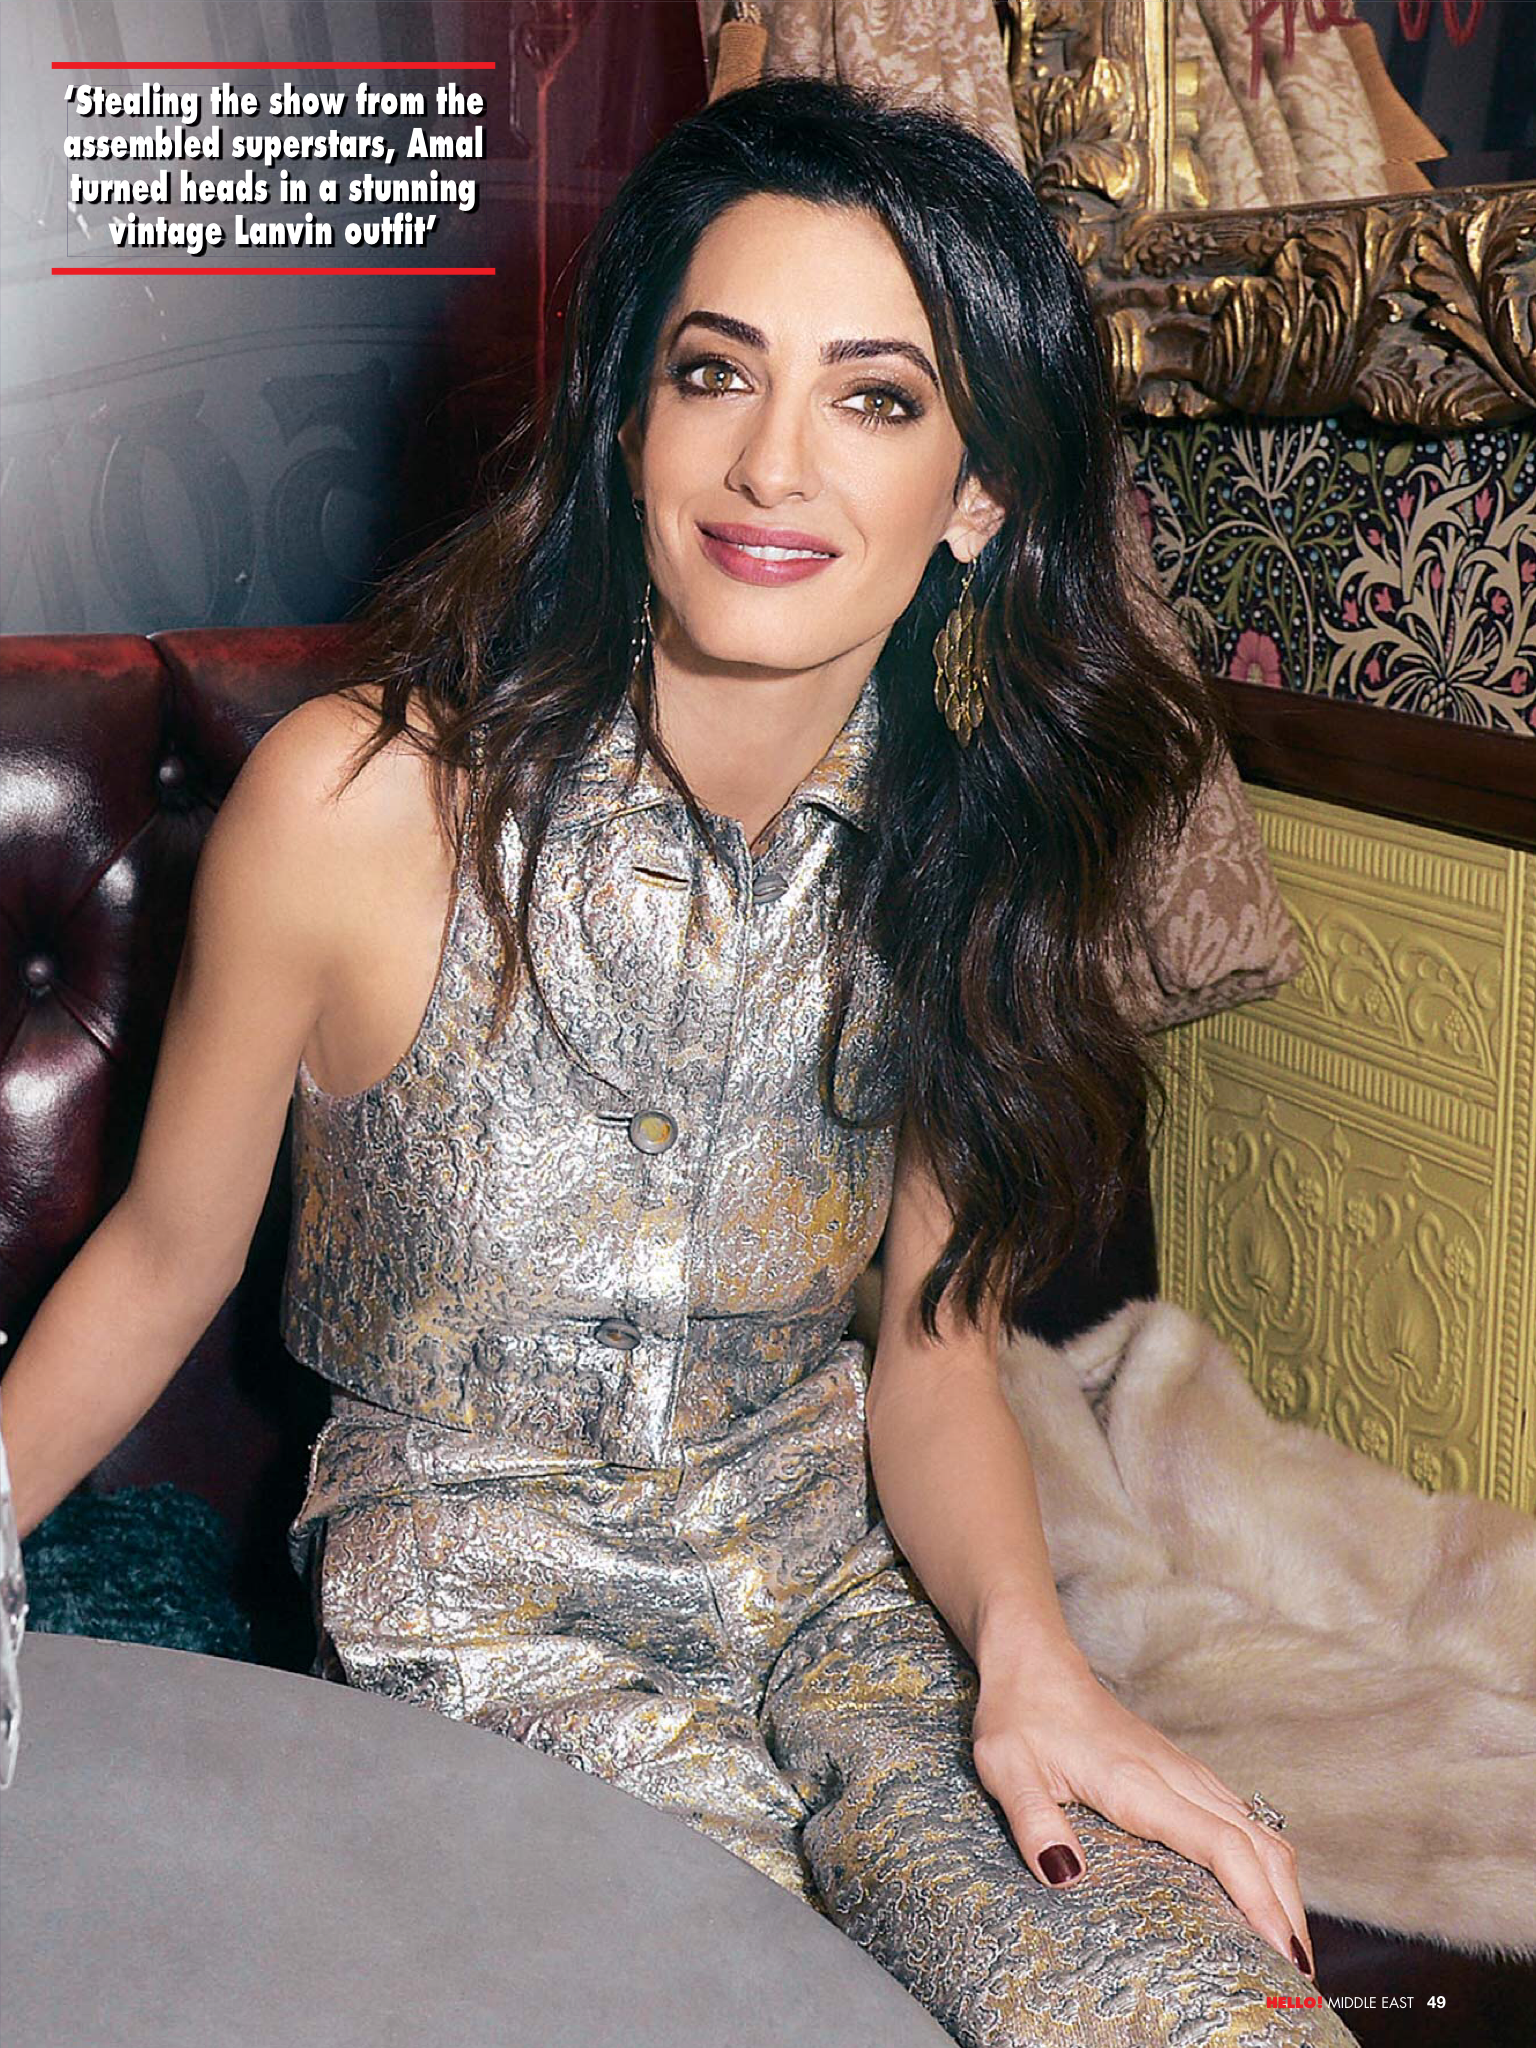 Amal Clooney on the cover of Hello ! Middle East 11.12.2015 | Amal ...